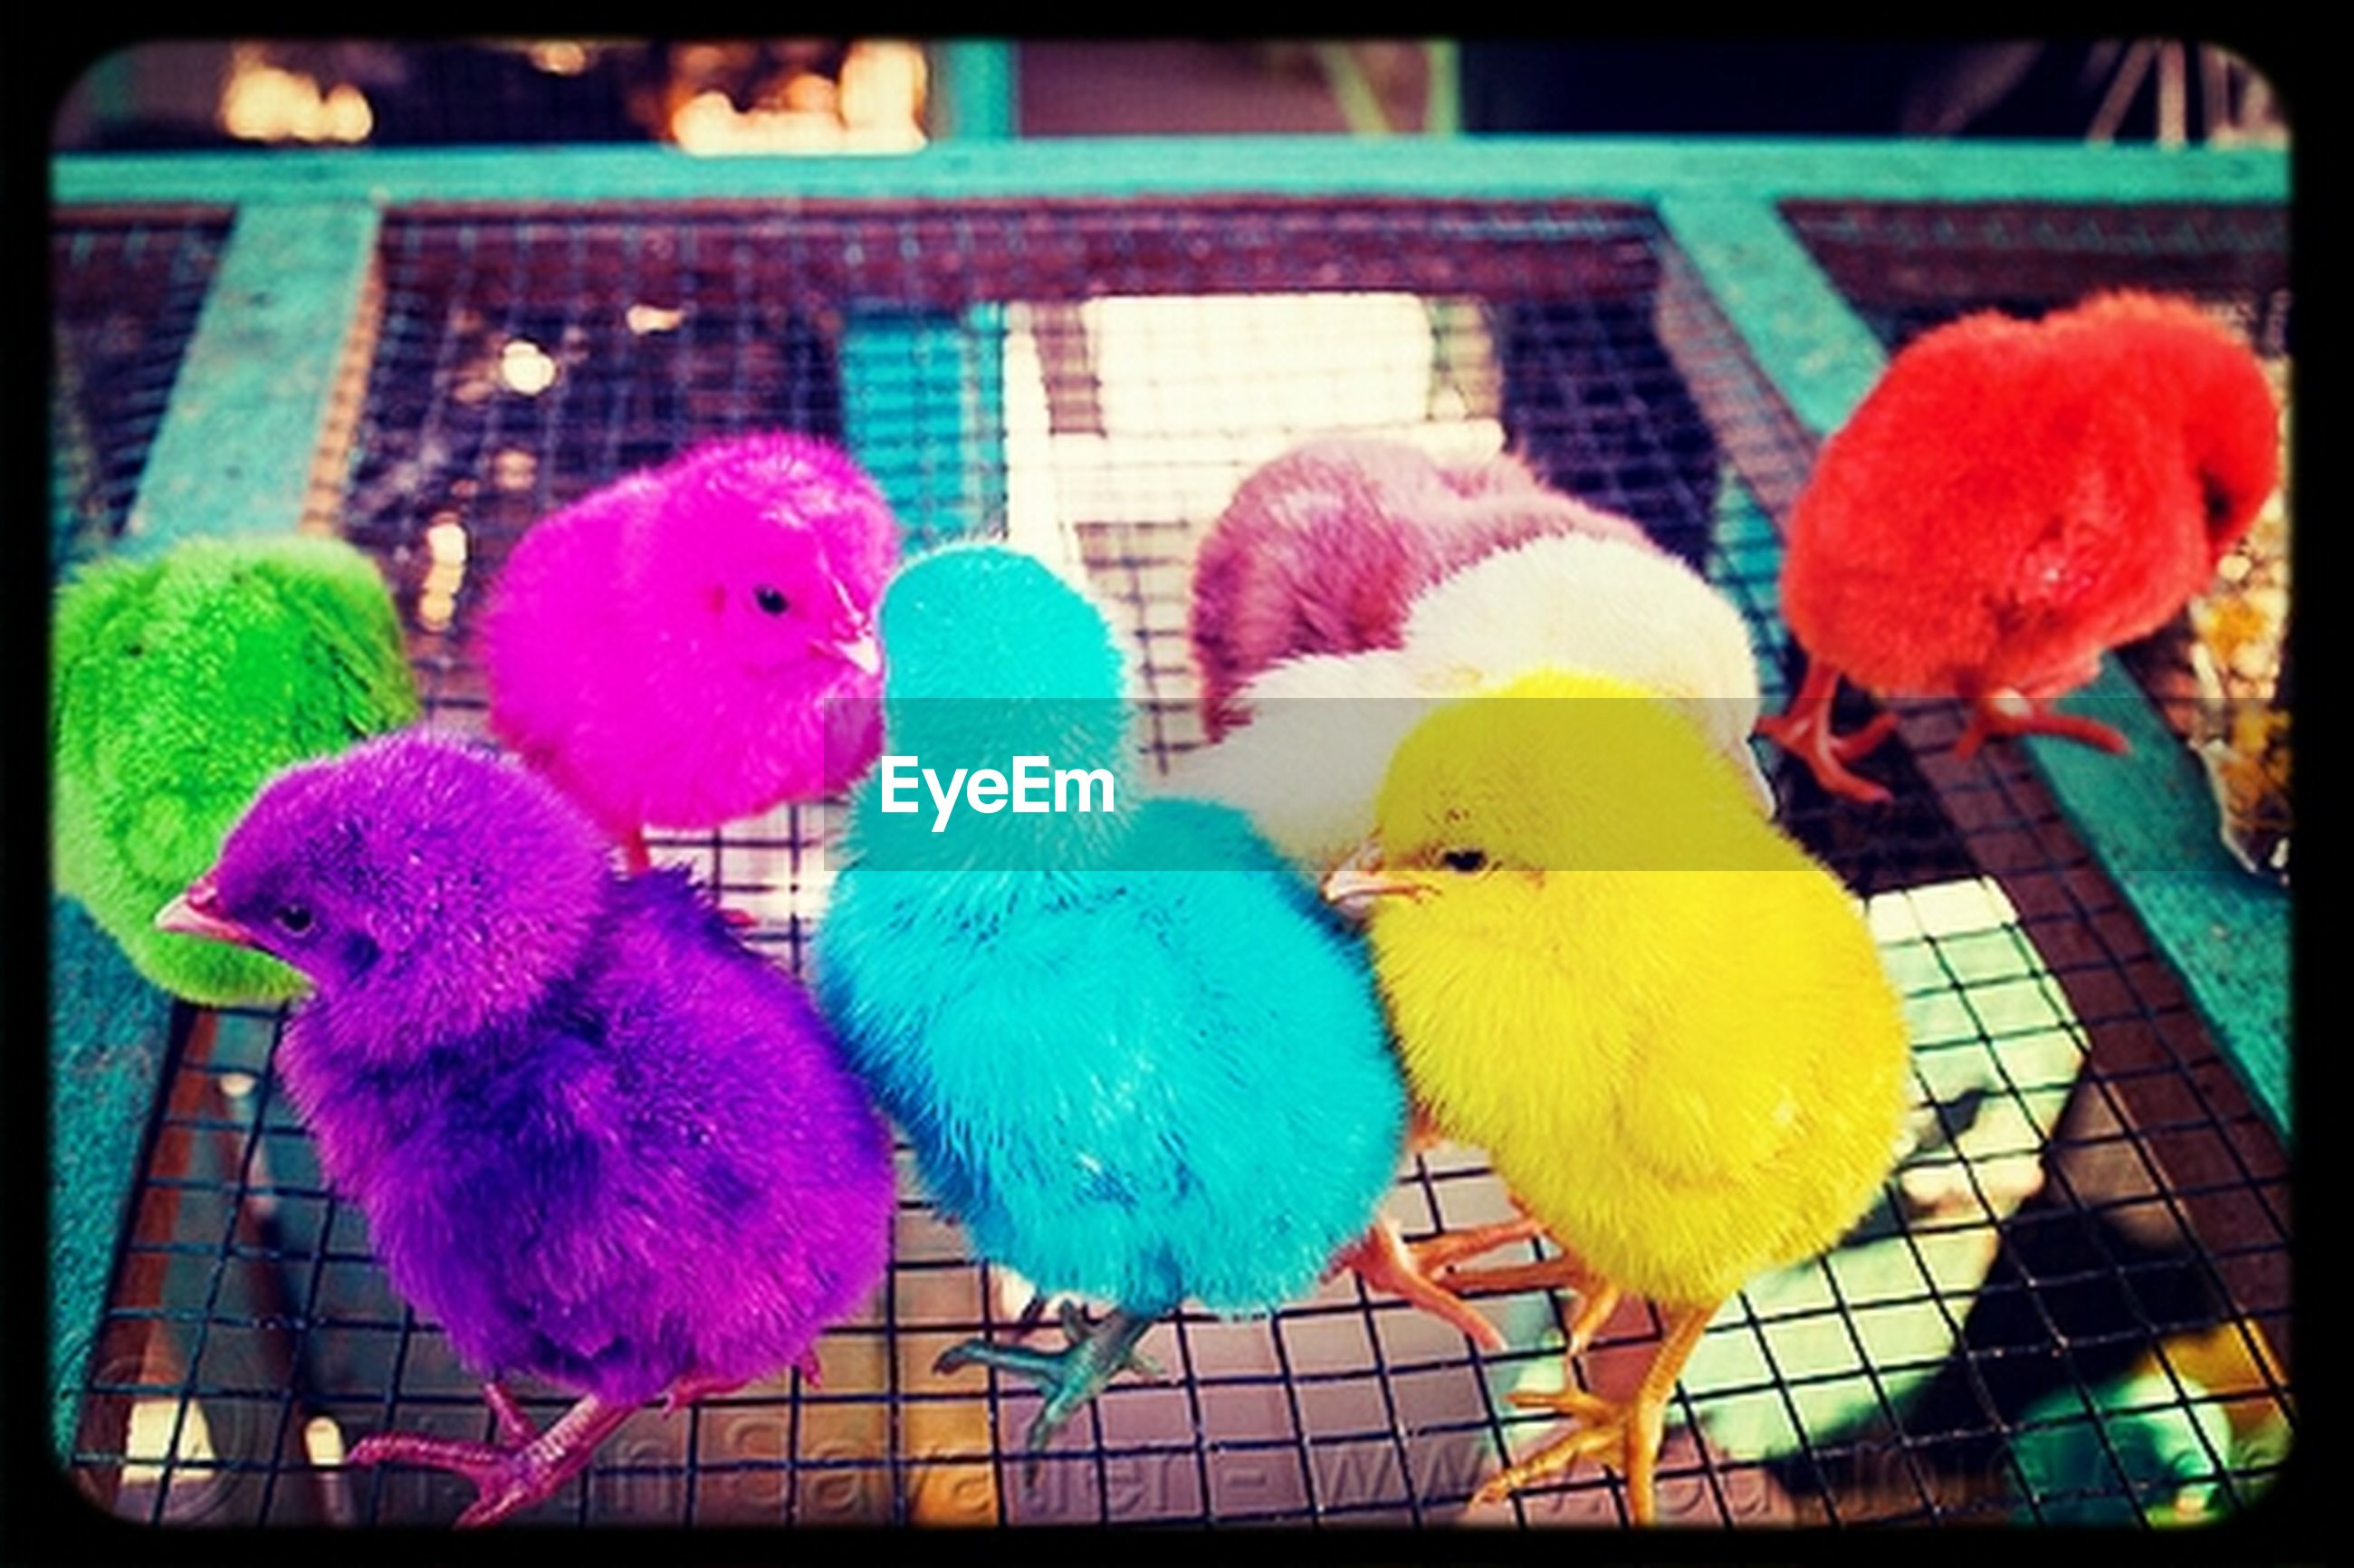 transfer print, multi colored, auto post production filter, bird, animal themes, indoors, variation, animal representation, close-up, parrot, toy, stuffed toy, colorful, no people, birdcage, day, focus on foreground, animals in captivity, childhood, domestic animals